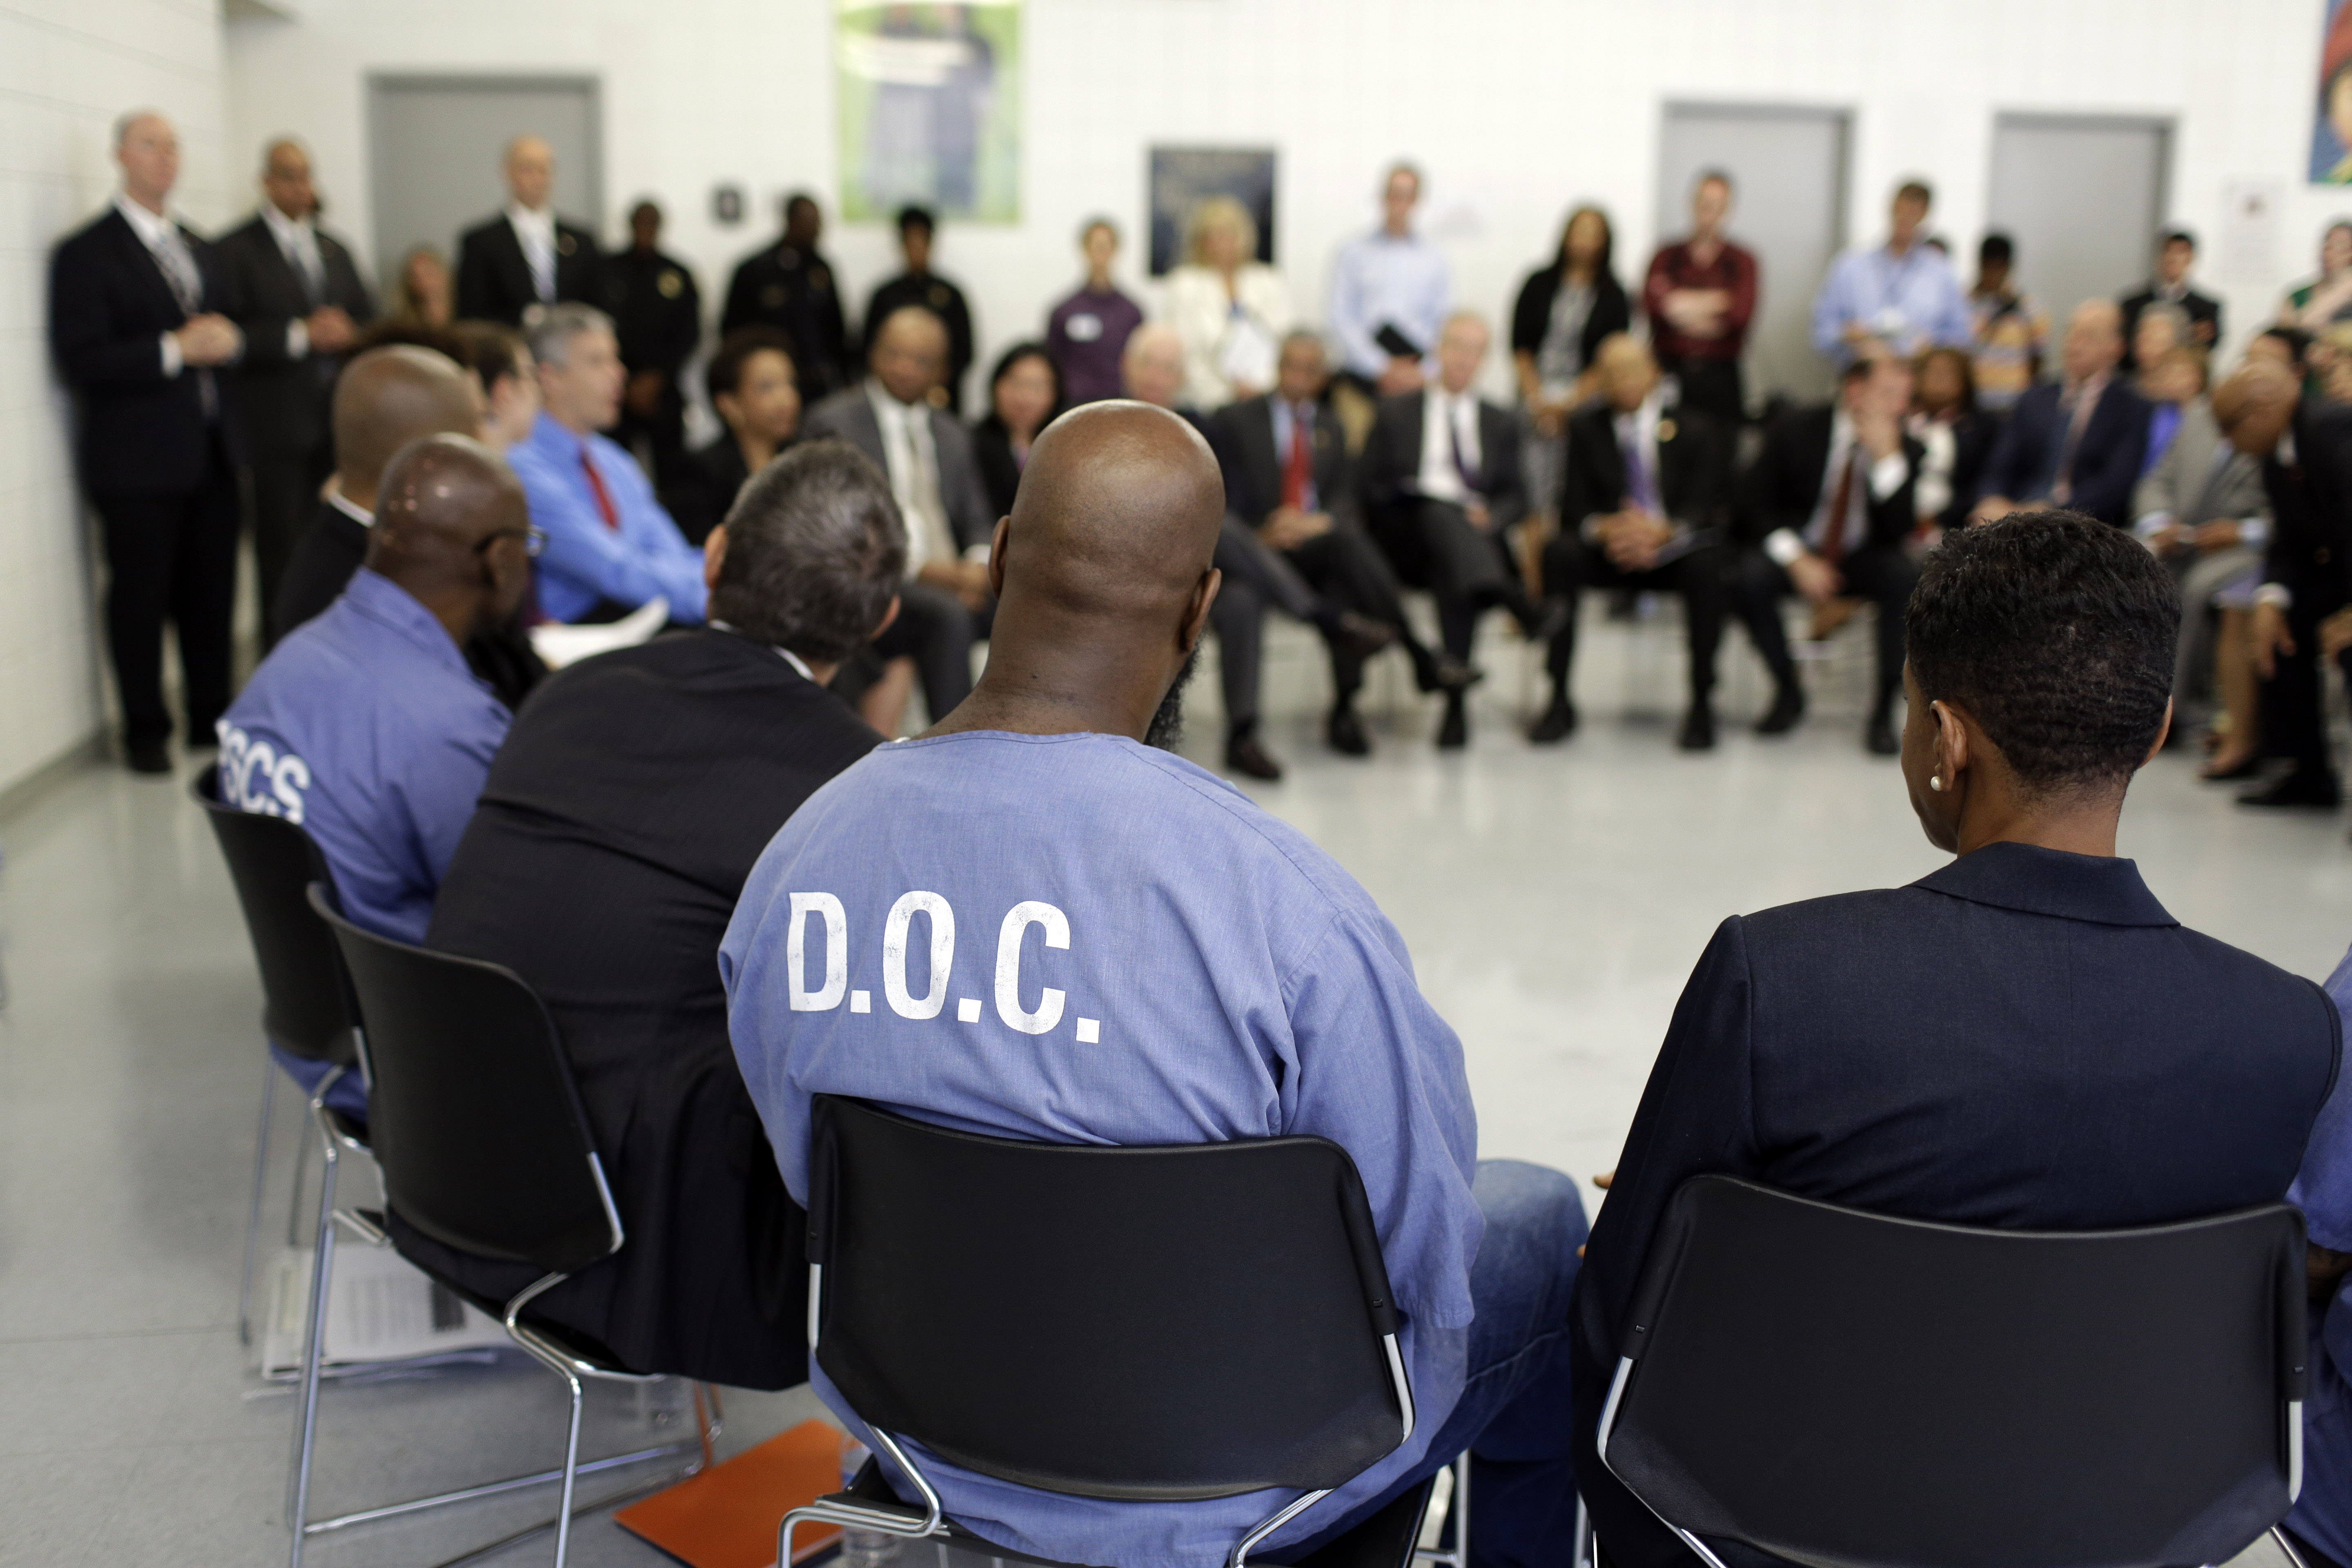 Inmate Alphonso Coats, a participant in the Goucher College Prison Education Partnership, sits in a discussion with Attorney General Loretta Lynch, Education Secretary Arne Duncan and other officials inside the Maryland Correctional Institution-Jessup on July 31, 2015, in Jessup, Md.